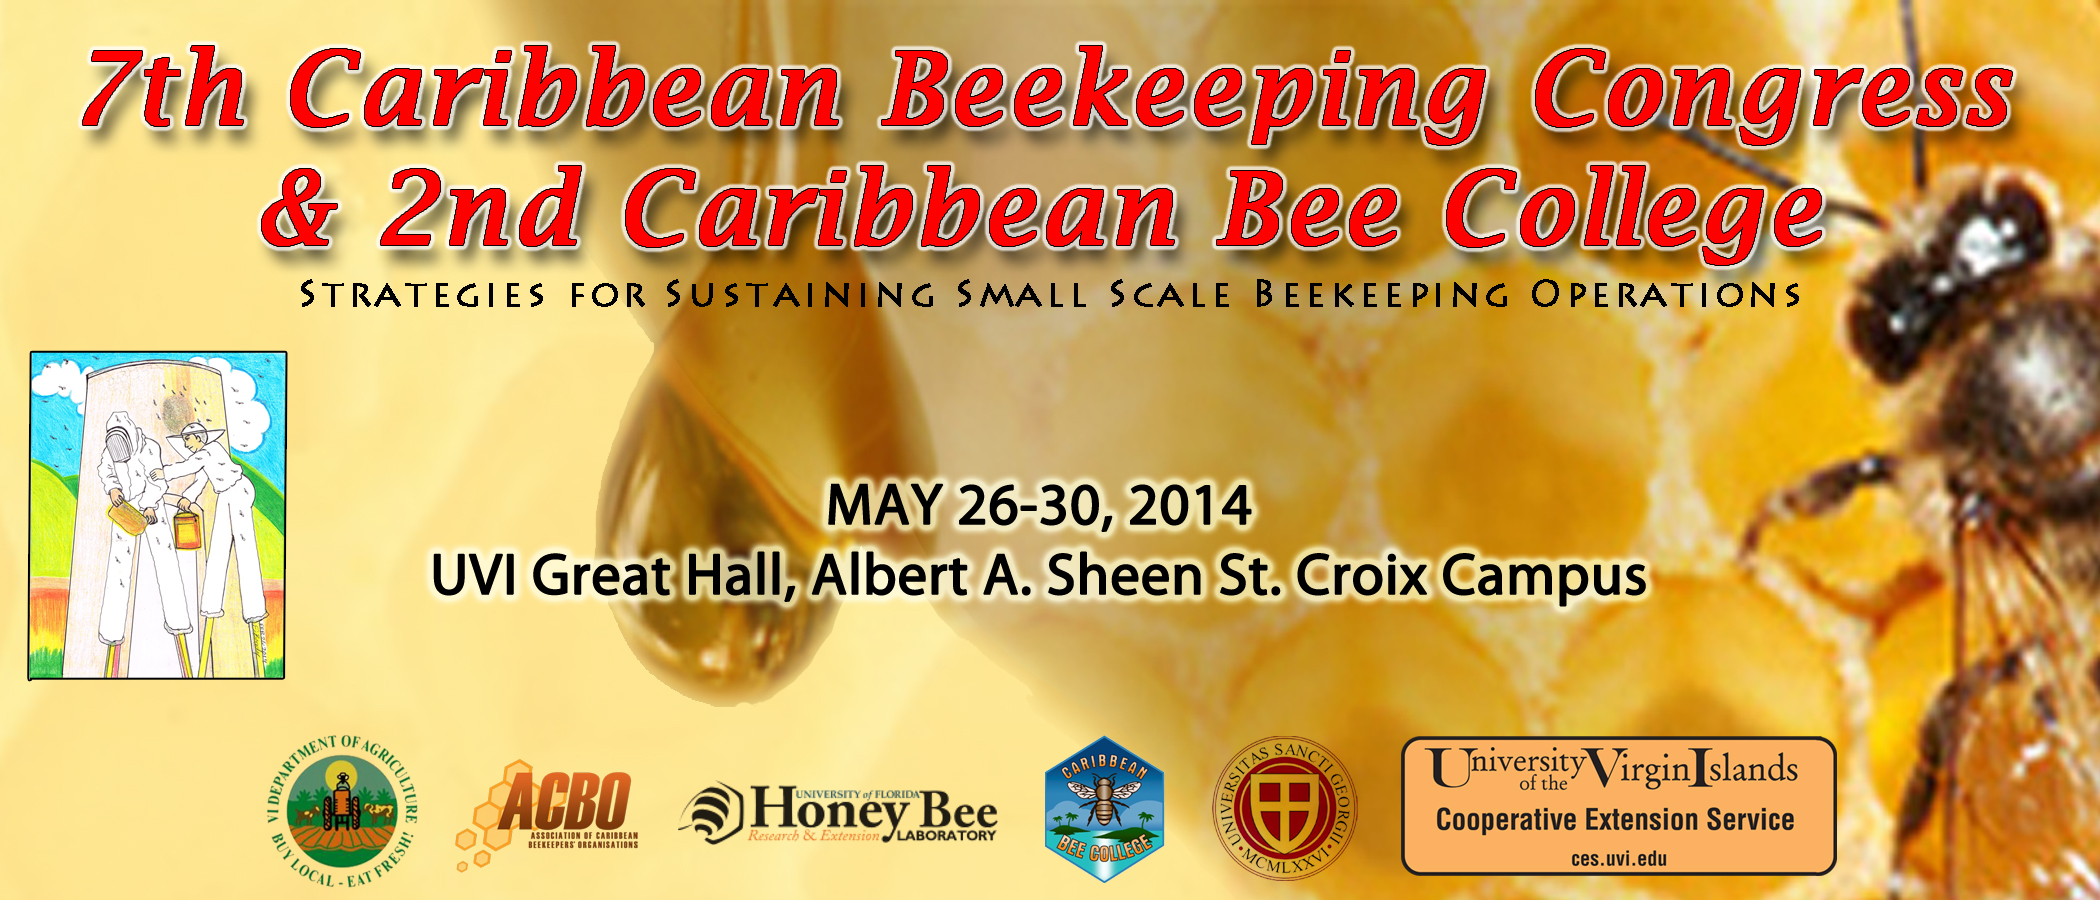 Save the Date: UVICES to Host 7th Caribbean Beekeeping Congress on St. Croix from May 26 to 30 on St. Croix